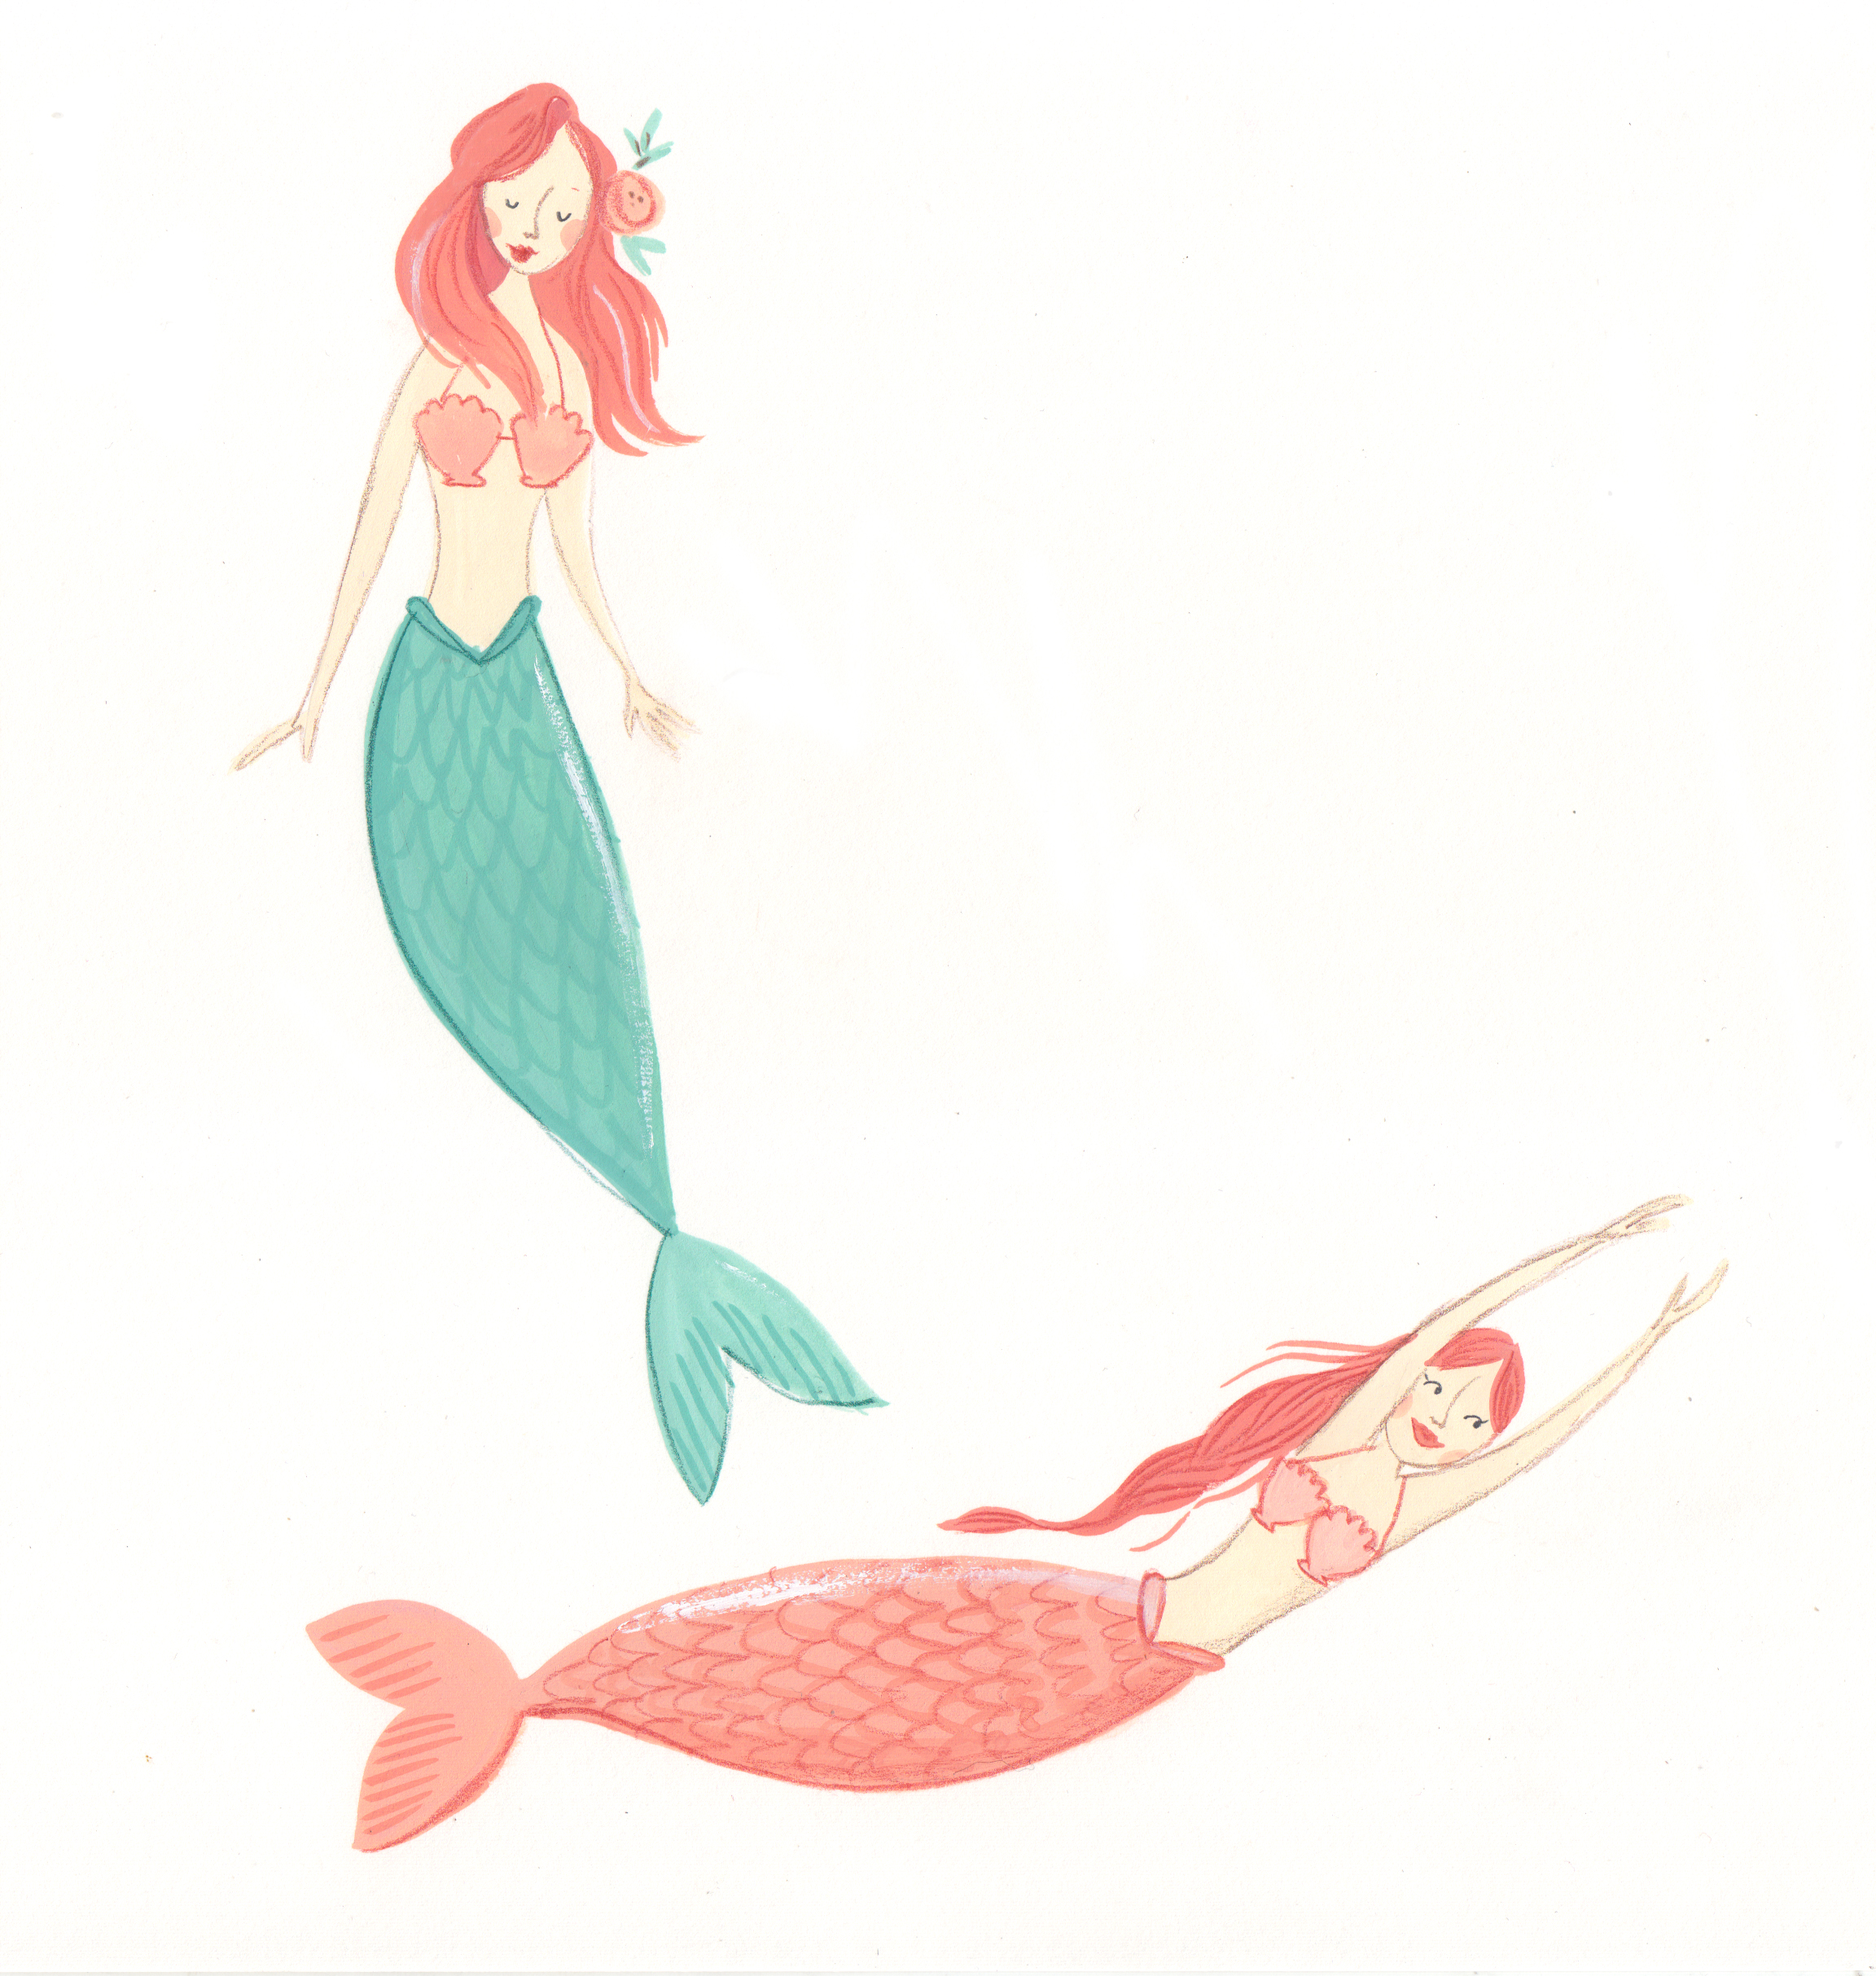 mermaid artwork.jpg